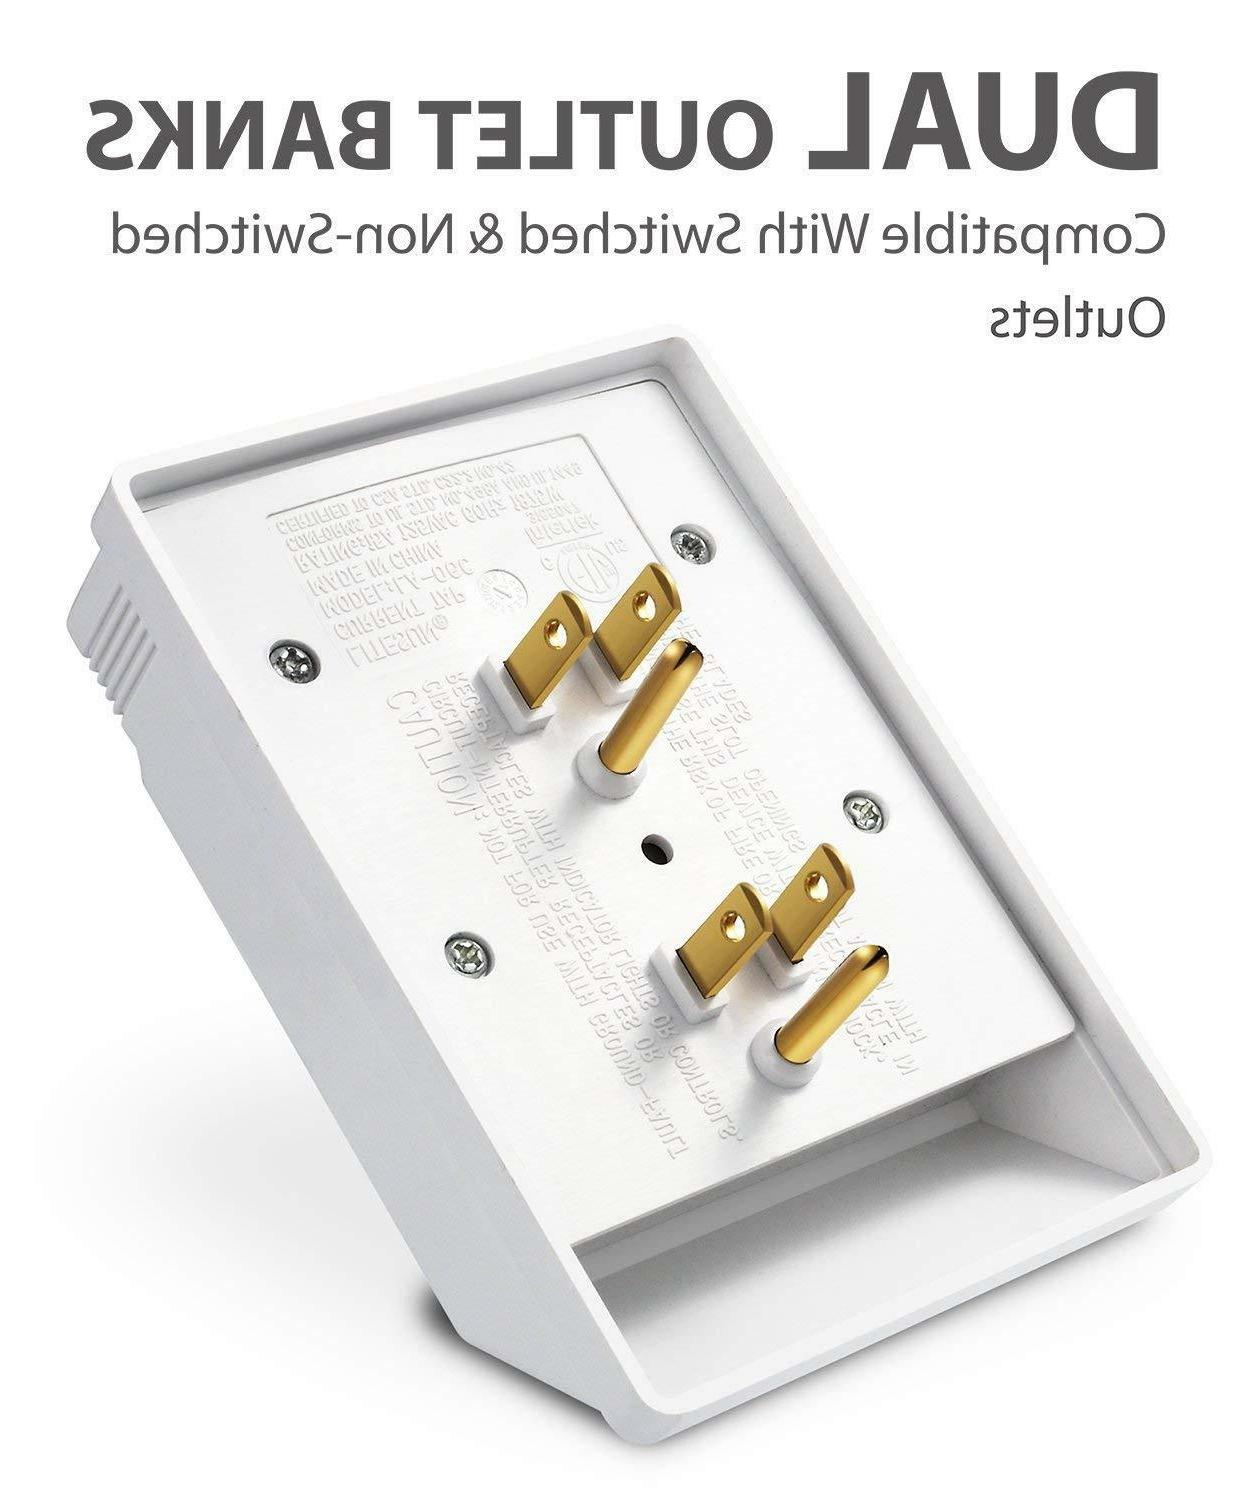 Wall Adapter Power Surge Protector Outlets